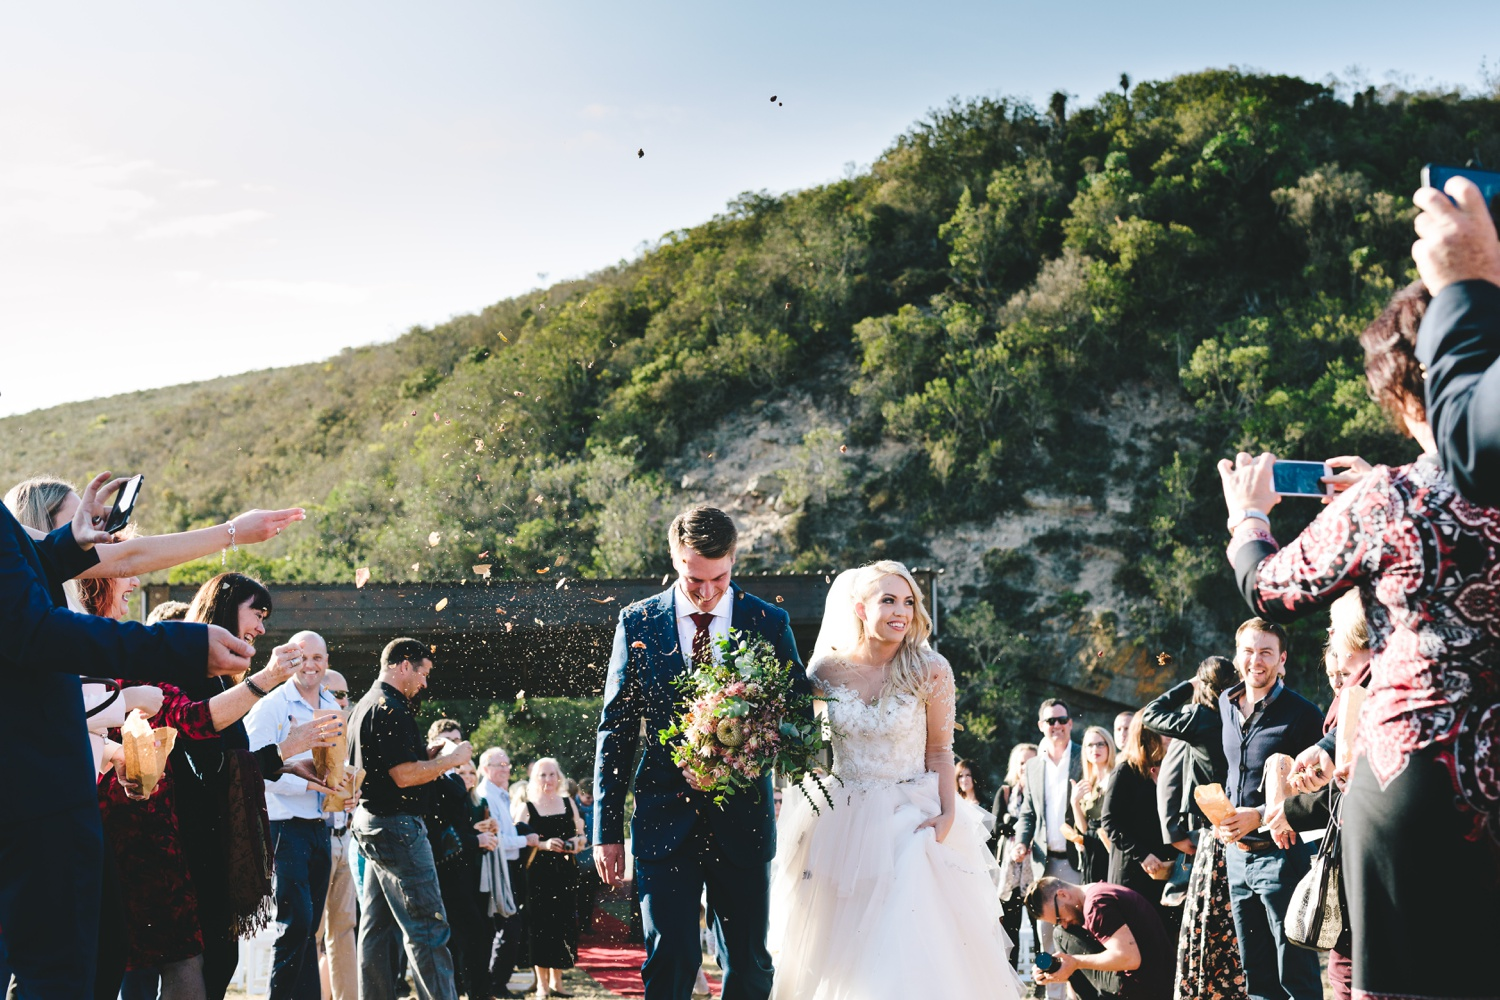 cathryn_warwick_wearecharlieray_hopewell_conservation_eastern_cape_wedding_0082.jpg